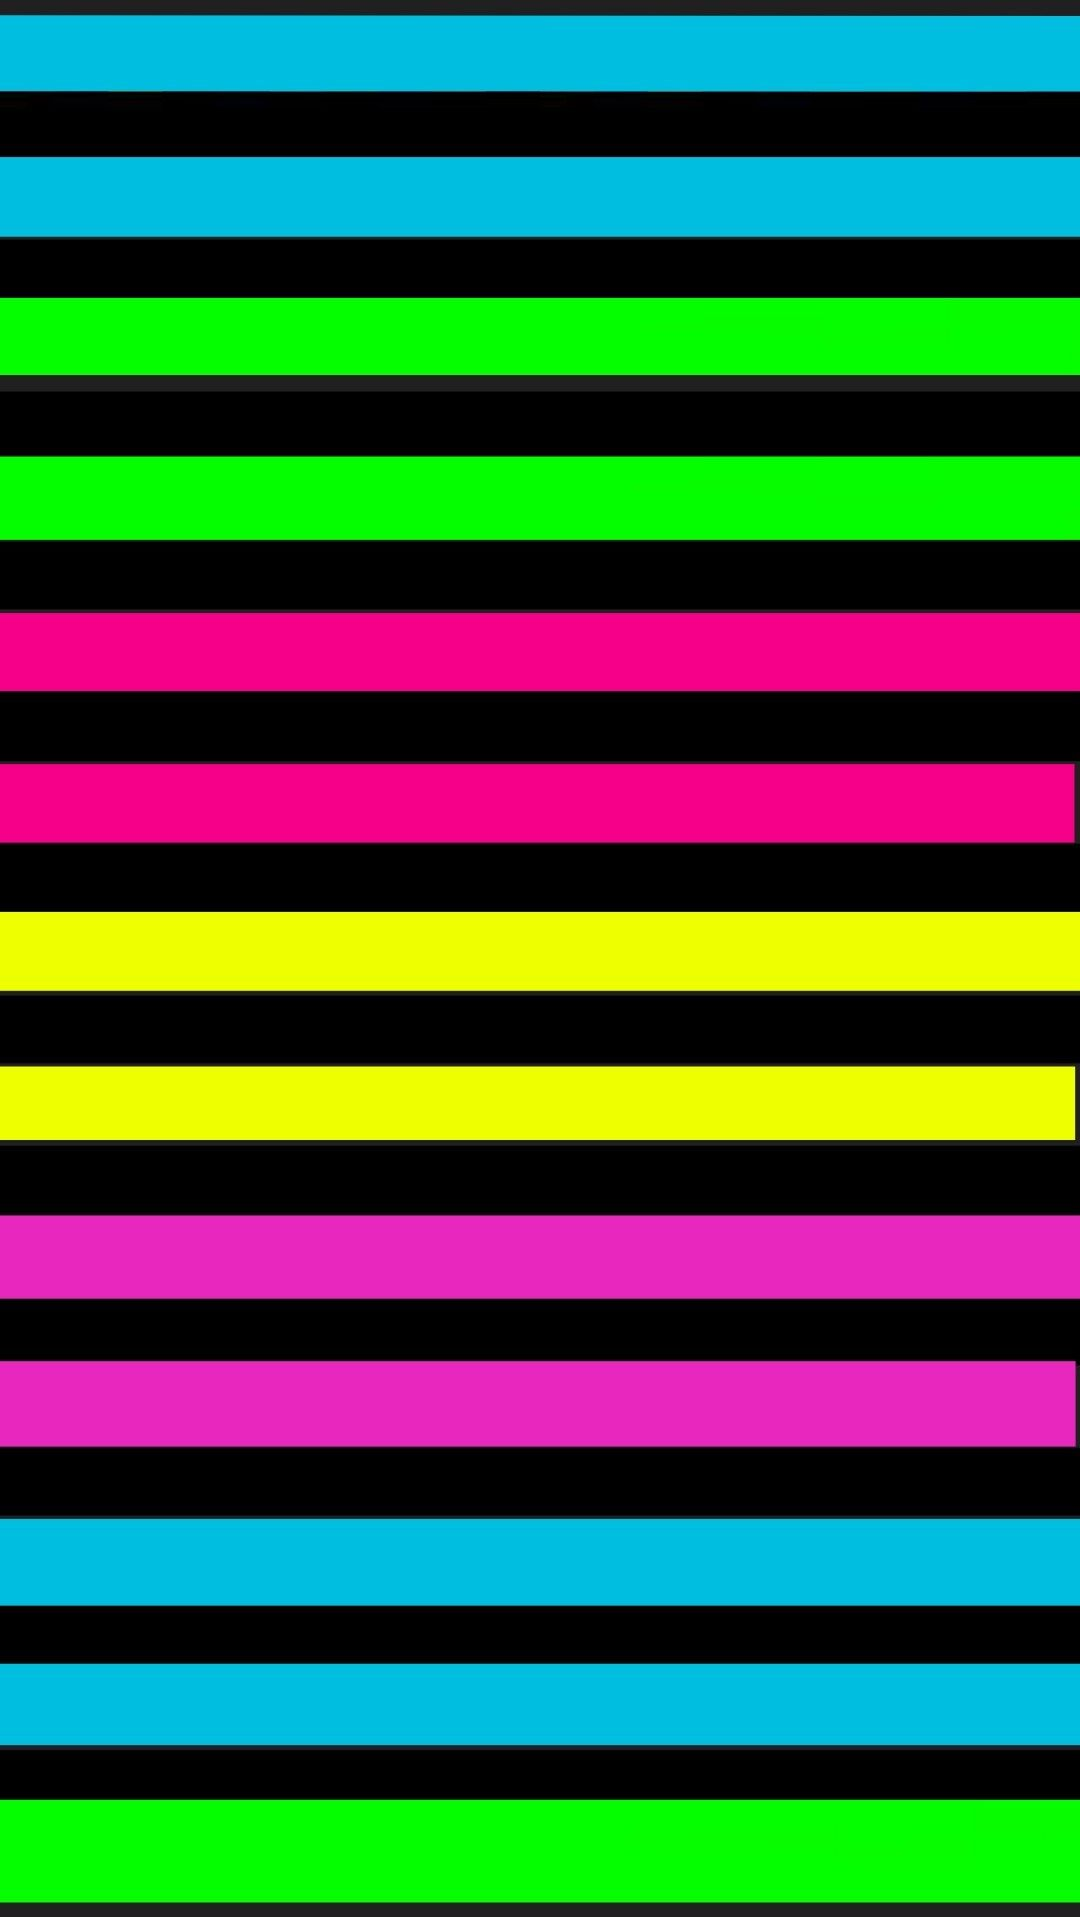 Neon Wallpaper Image By Christina Kirkendall On Striped